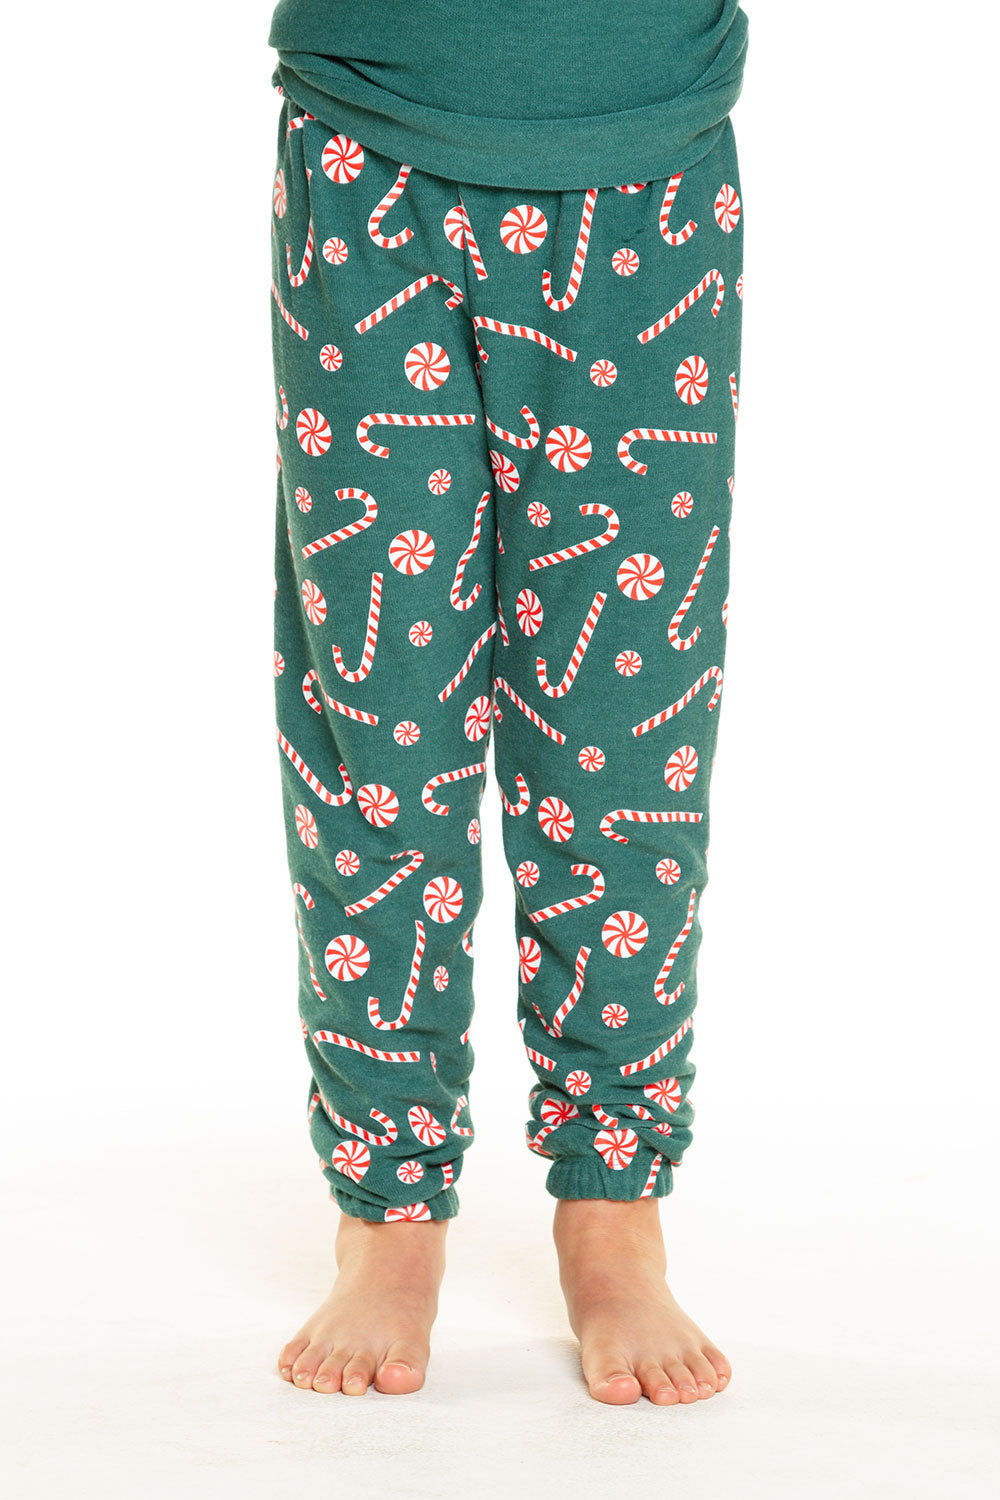 Peppermint Pants GIRLS chaserbrand4.myshopify.com